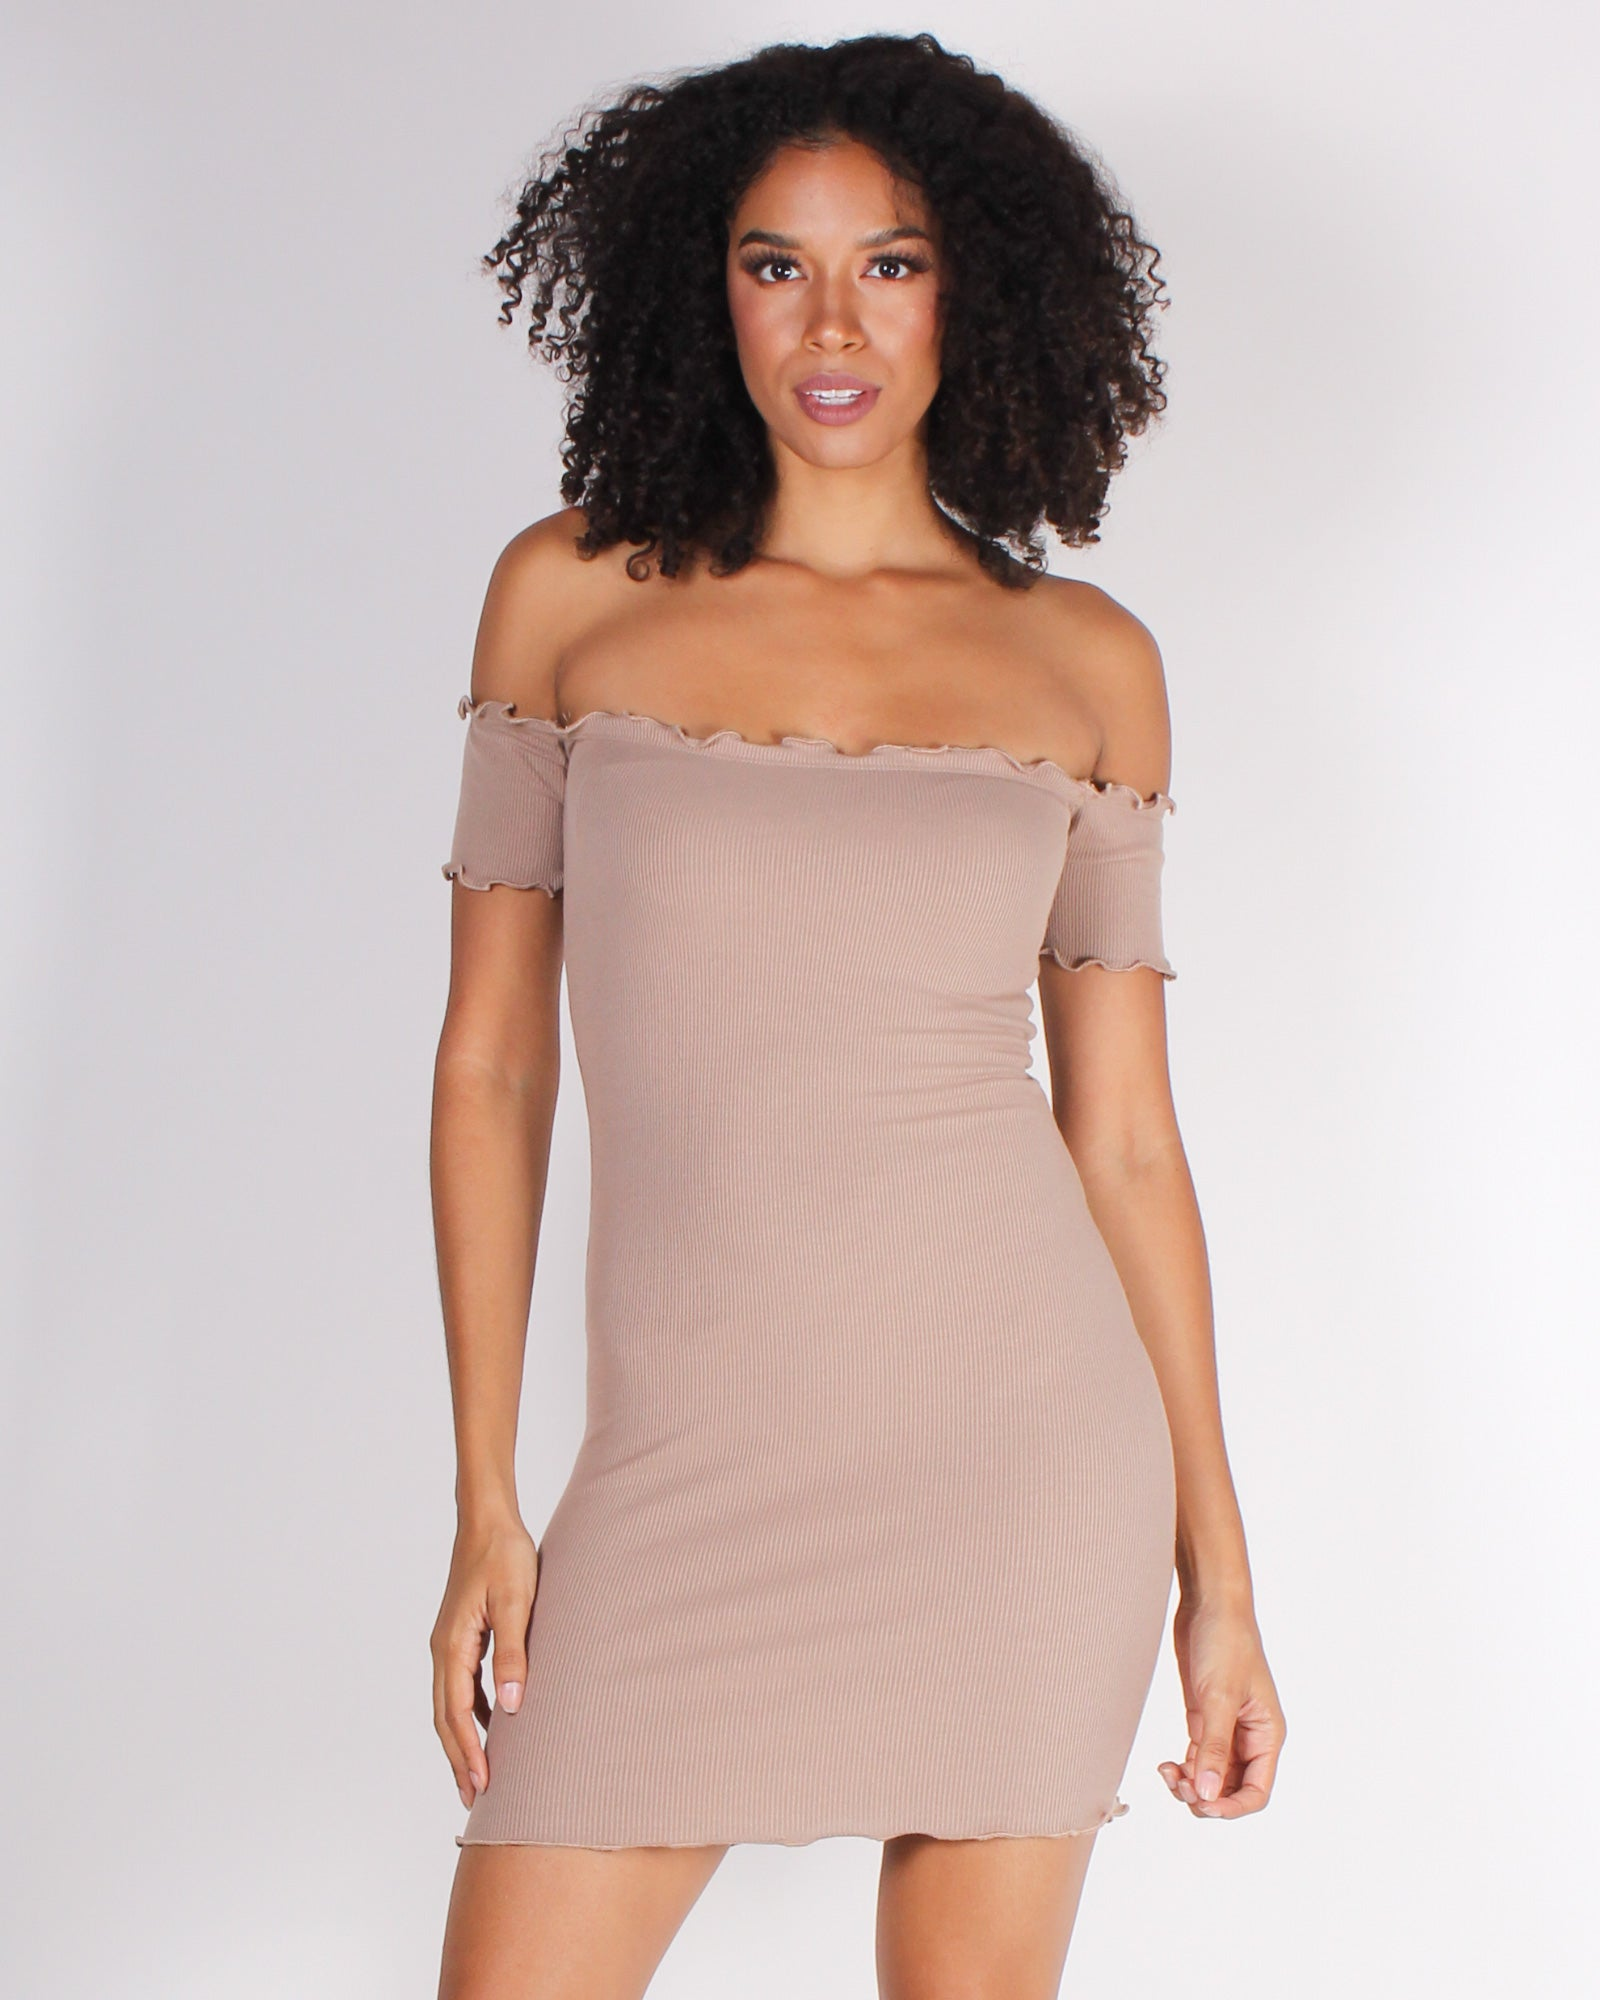 Fashion Q Shop Q Pretty and Witty and Bright Off the Shoulder Bodycon Dress (Taupe) RD31781